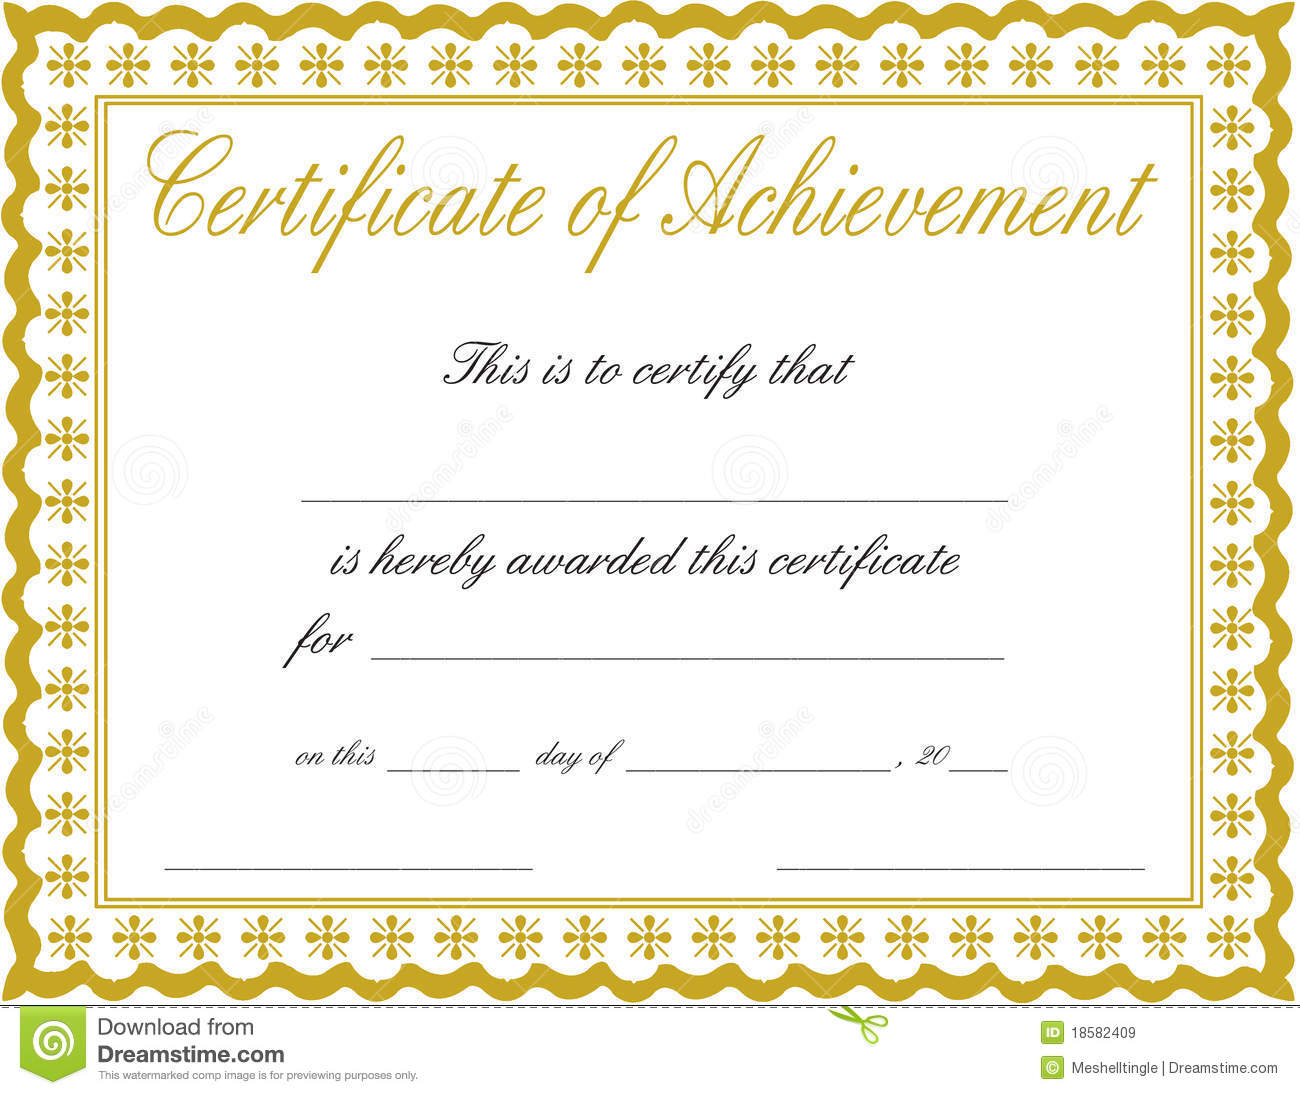 Certificates Of Achievement Templates Free